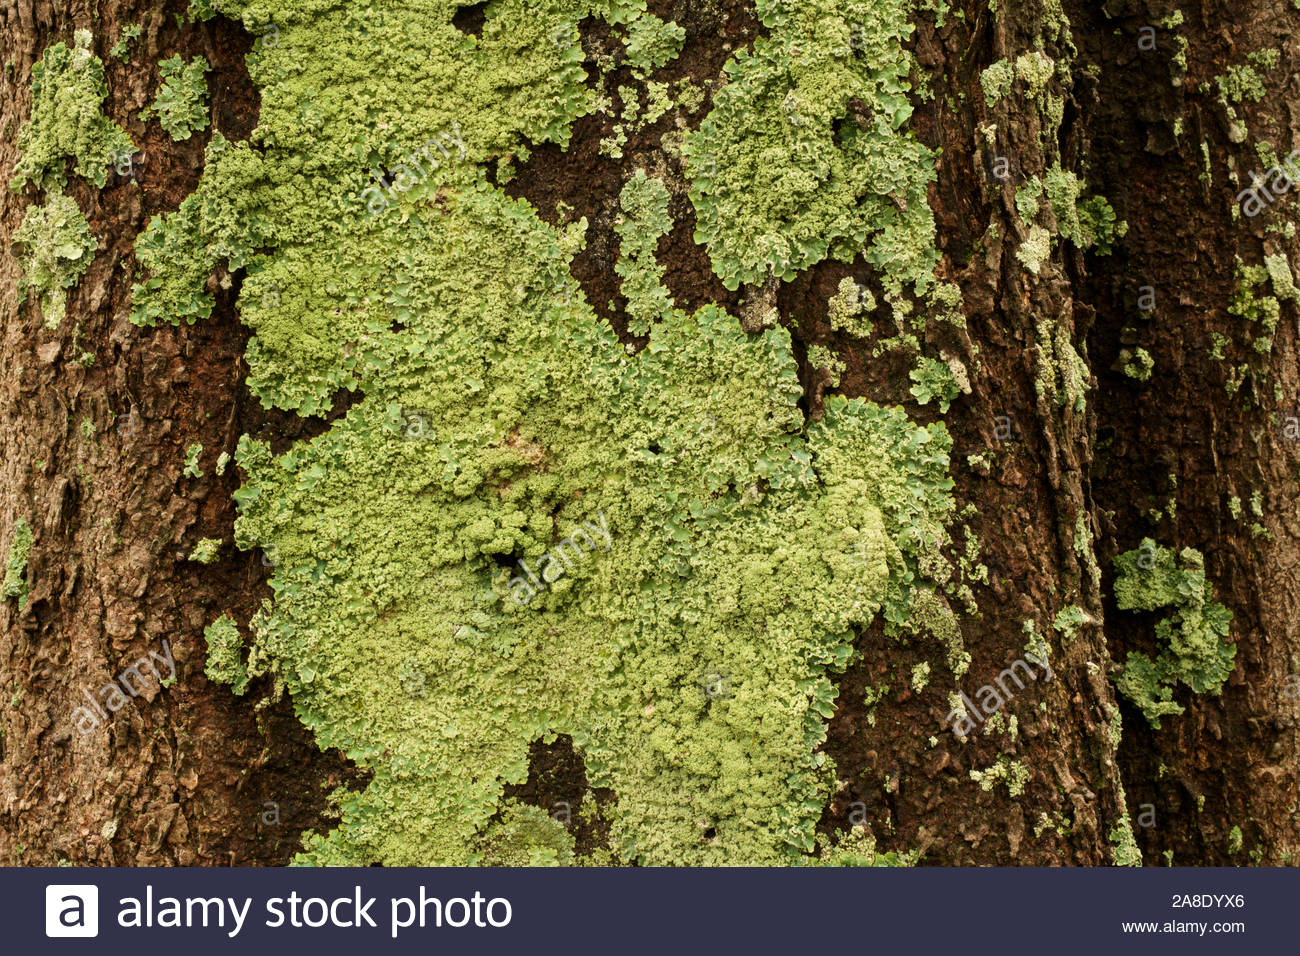 lichen-growing-on-the-bark-of-a-sheoak-tree-in-canning-river-regional-park-western-australia-2A8DYX6.jpg